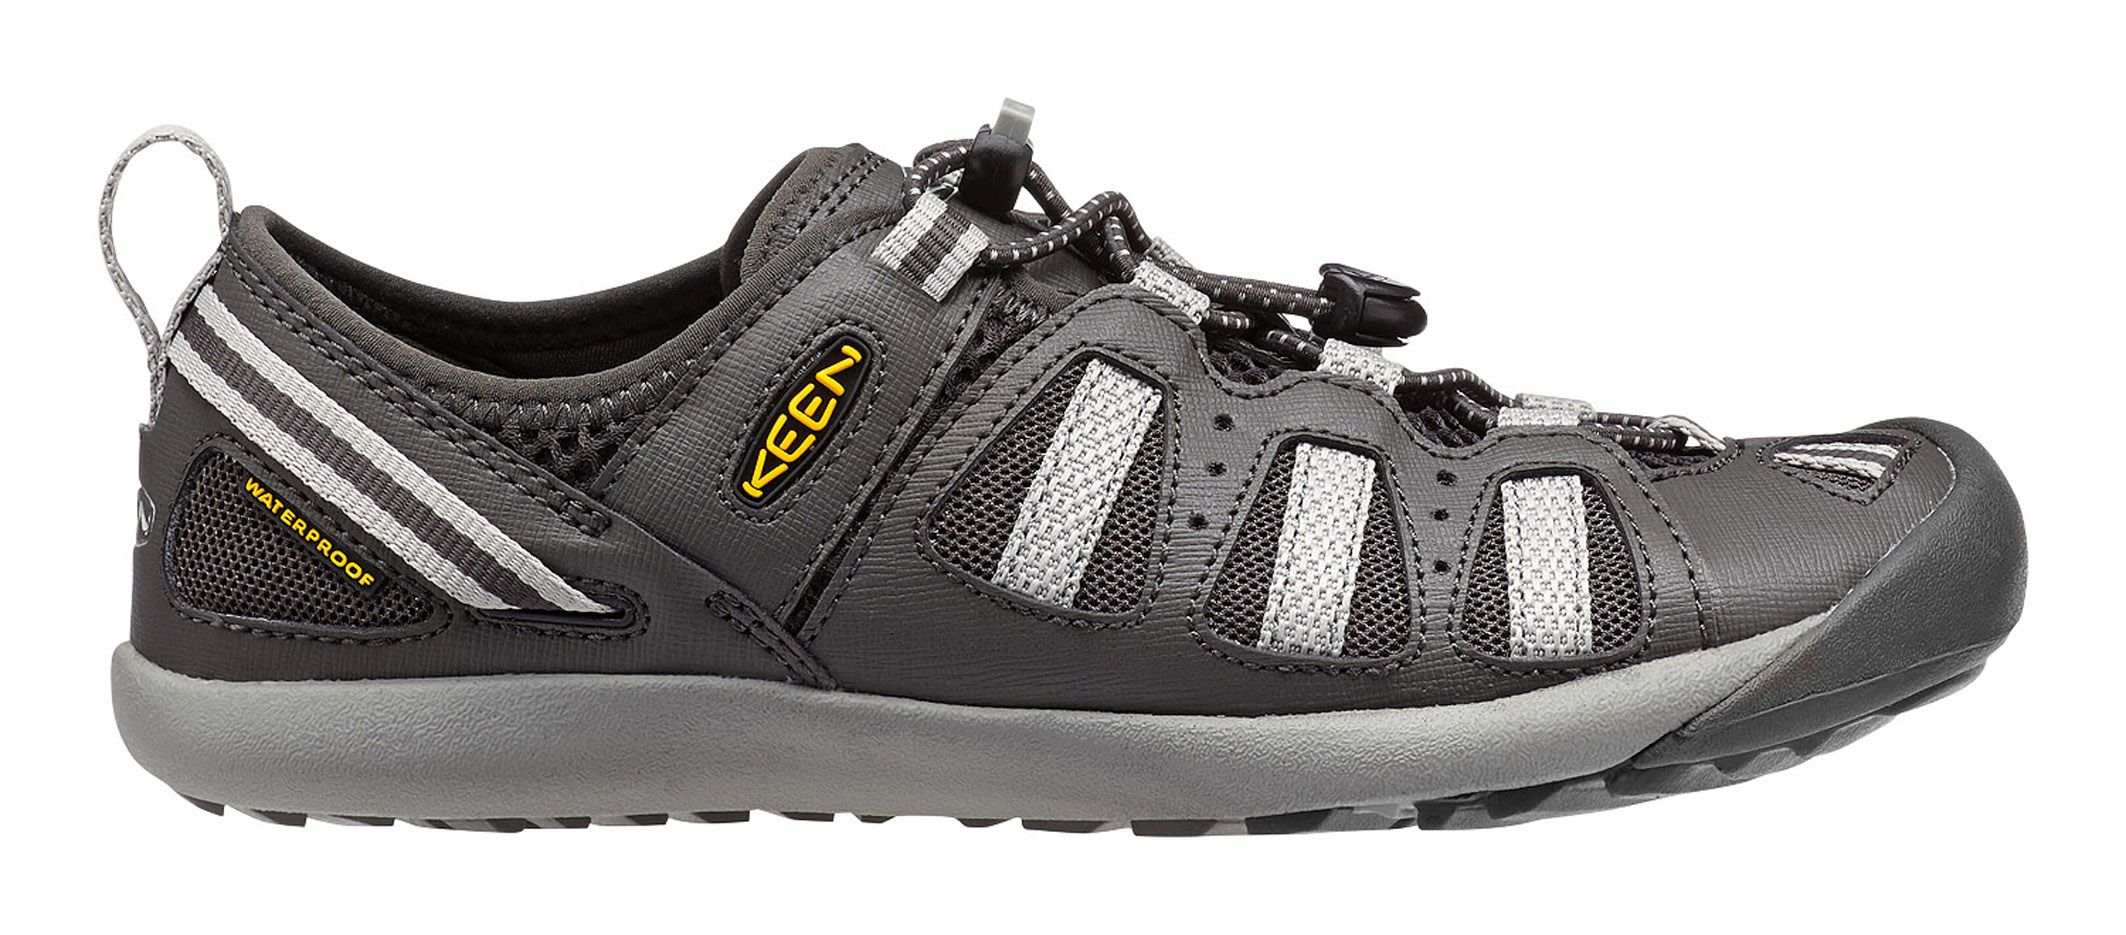 Keen Class 5 Tech Raven/Neutral Gray-30